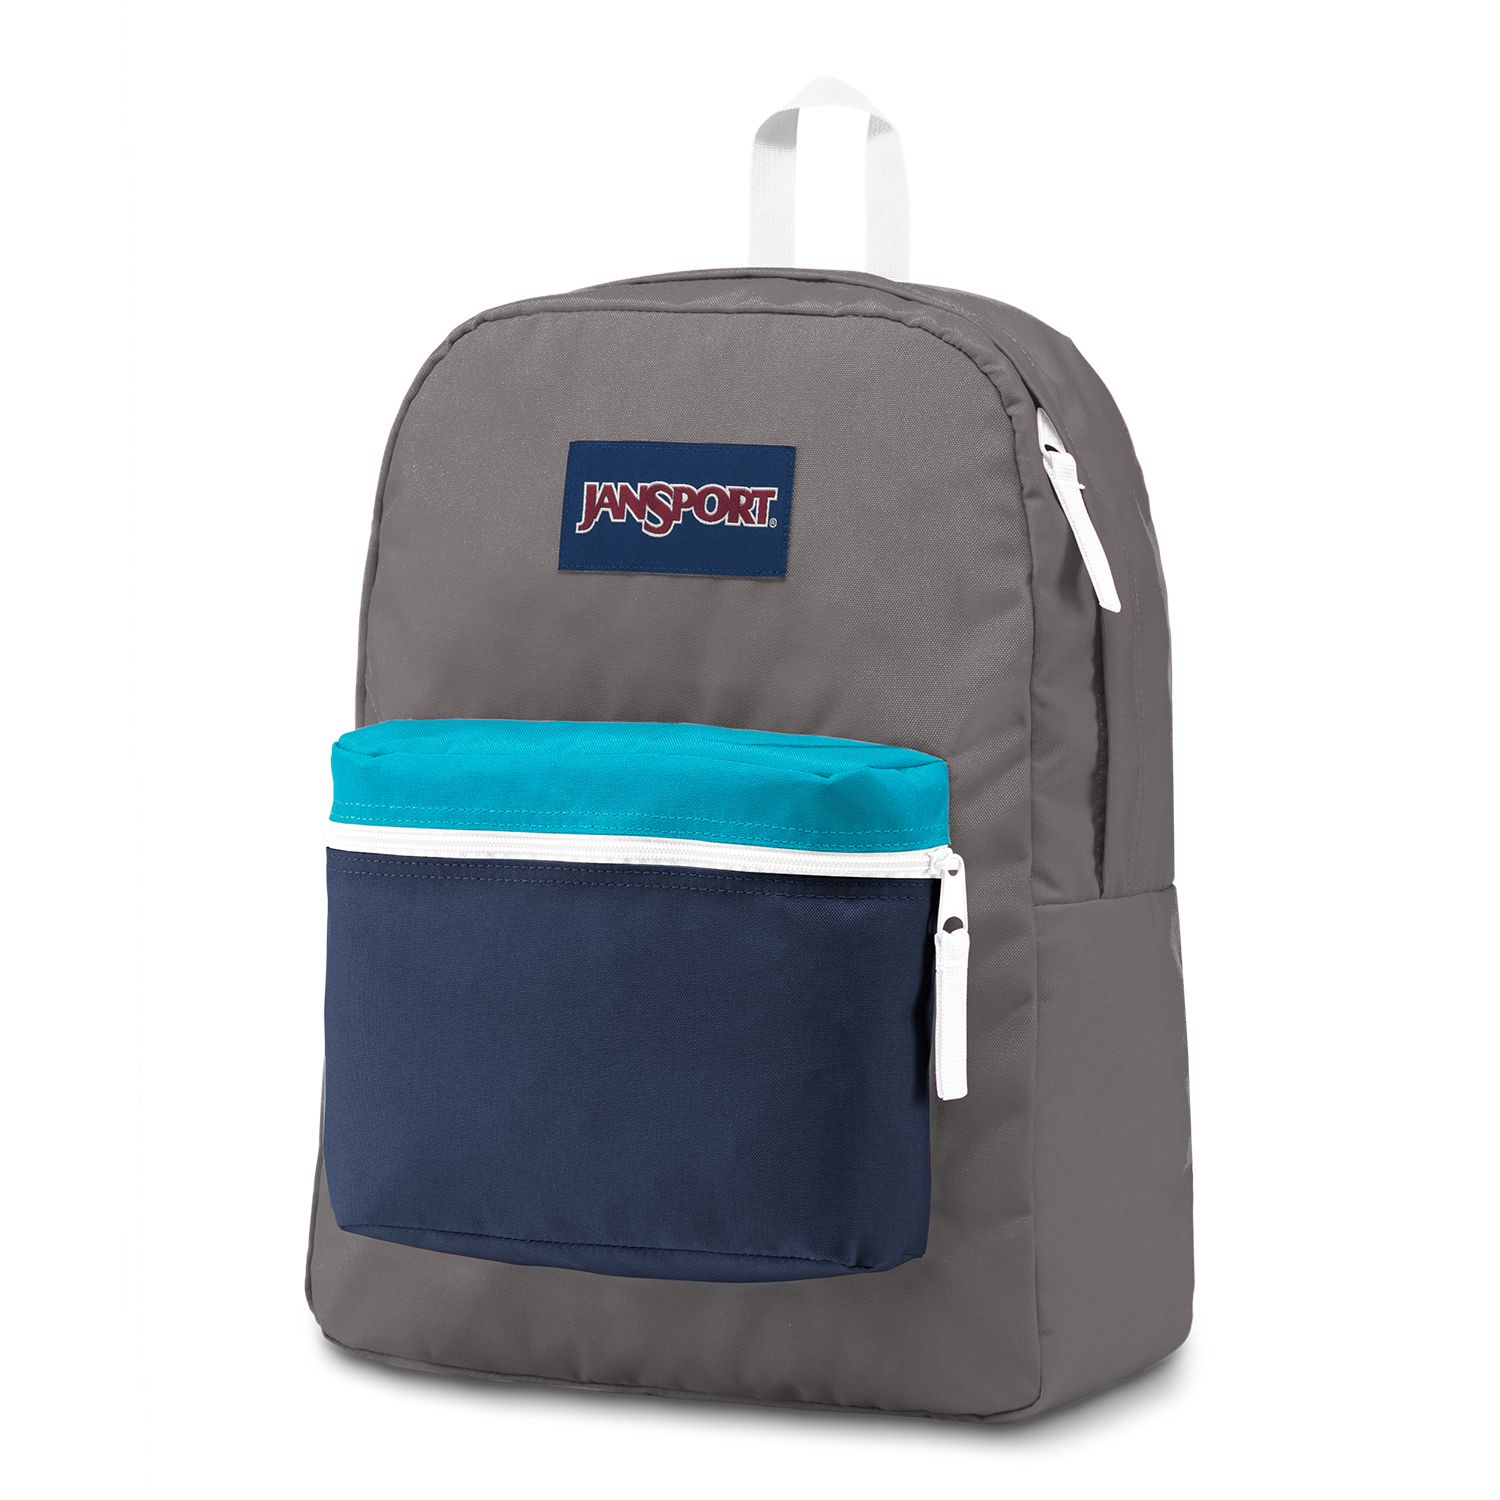 JanSport Backpacks  49440620fa1f4